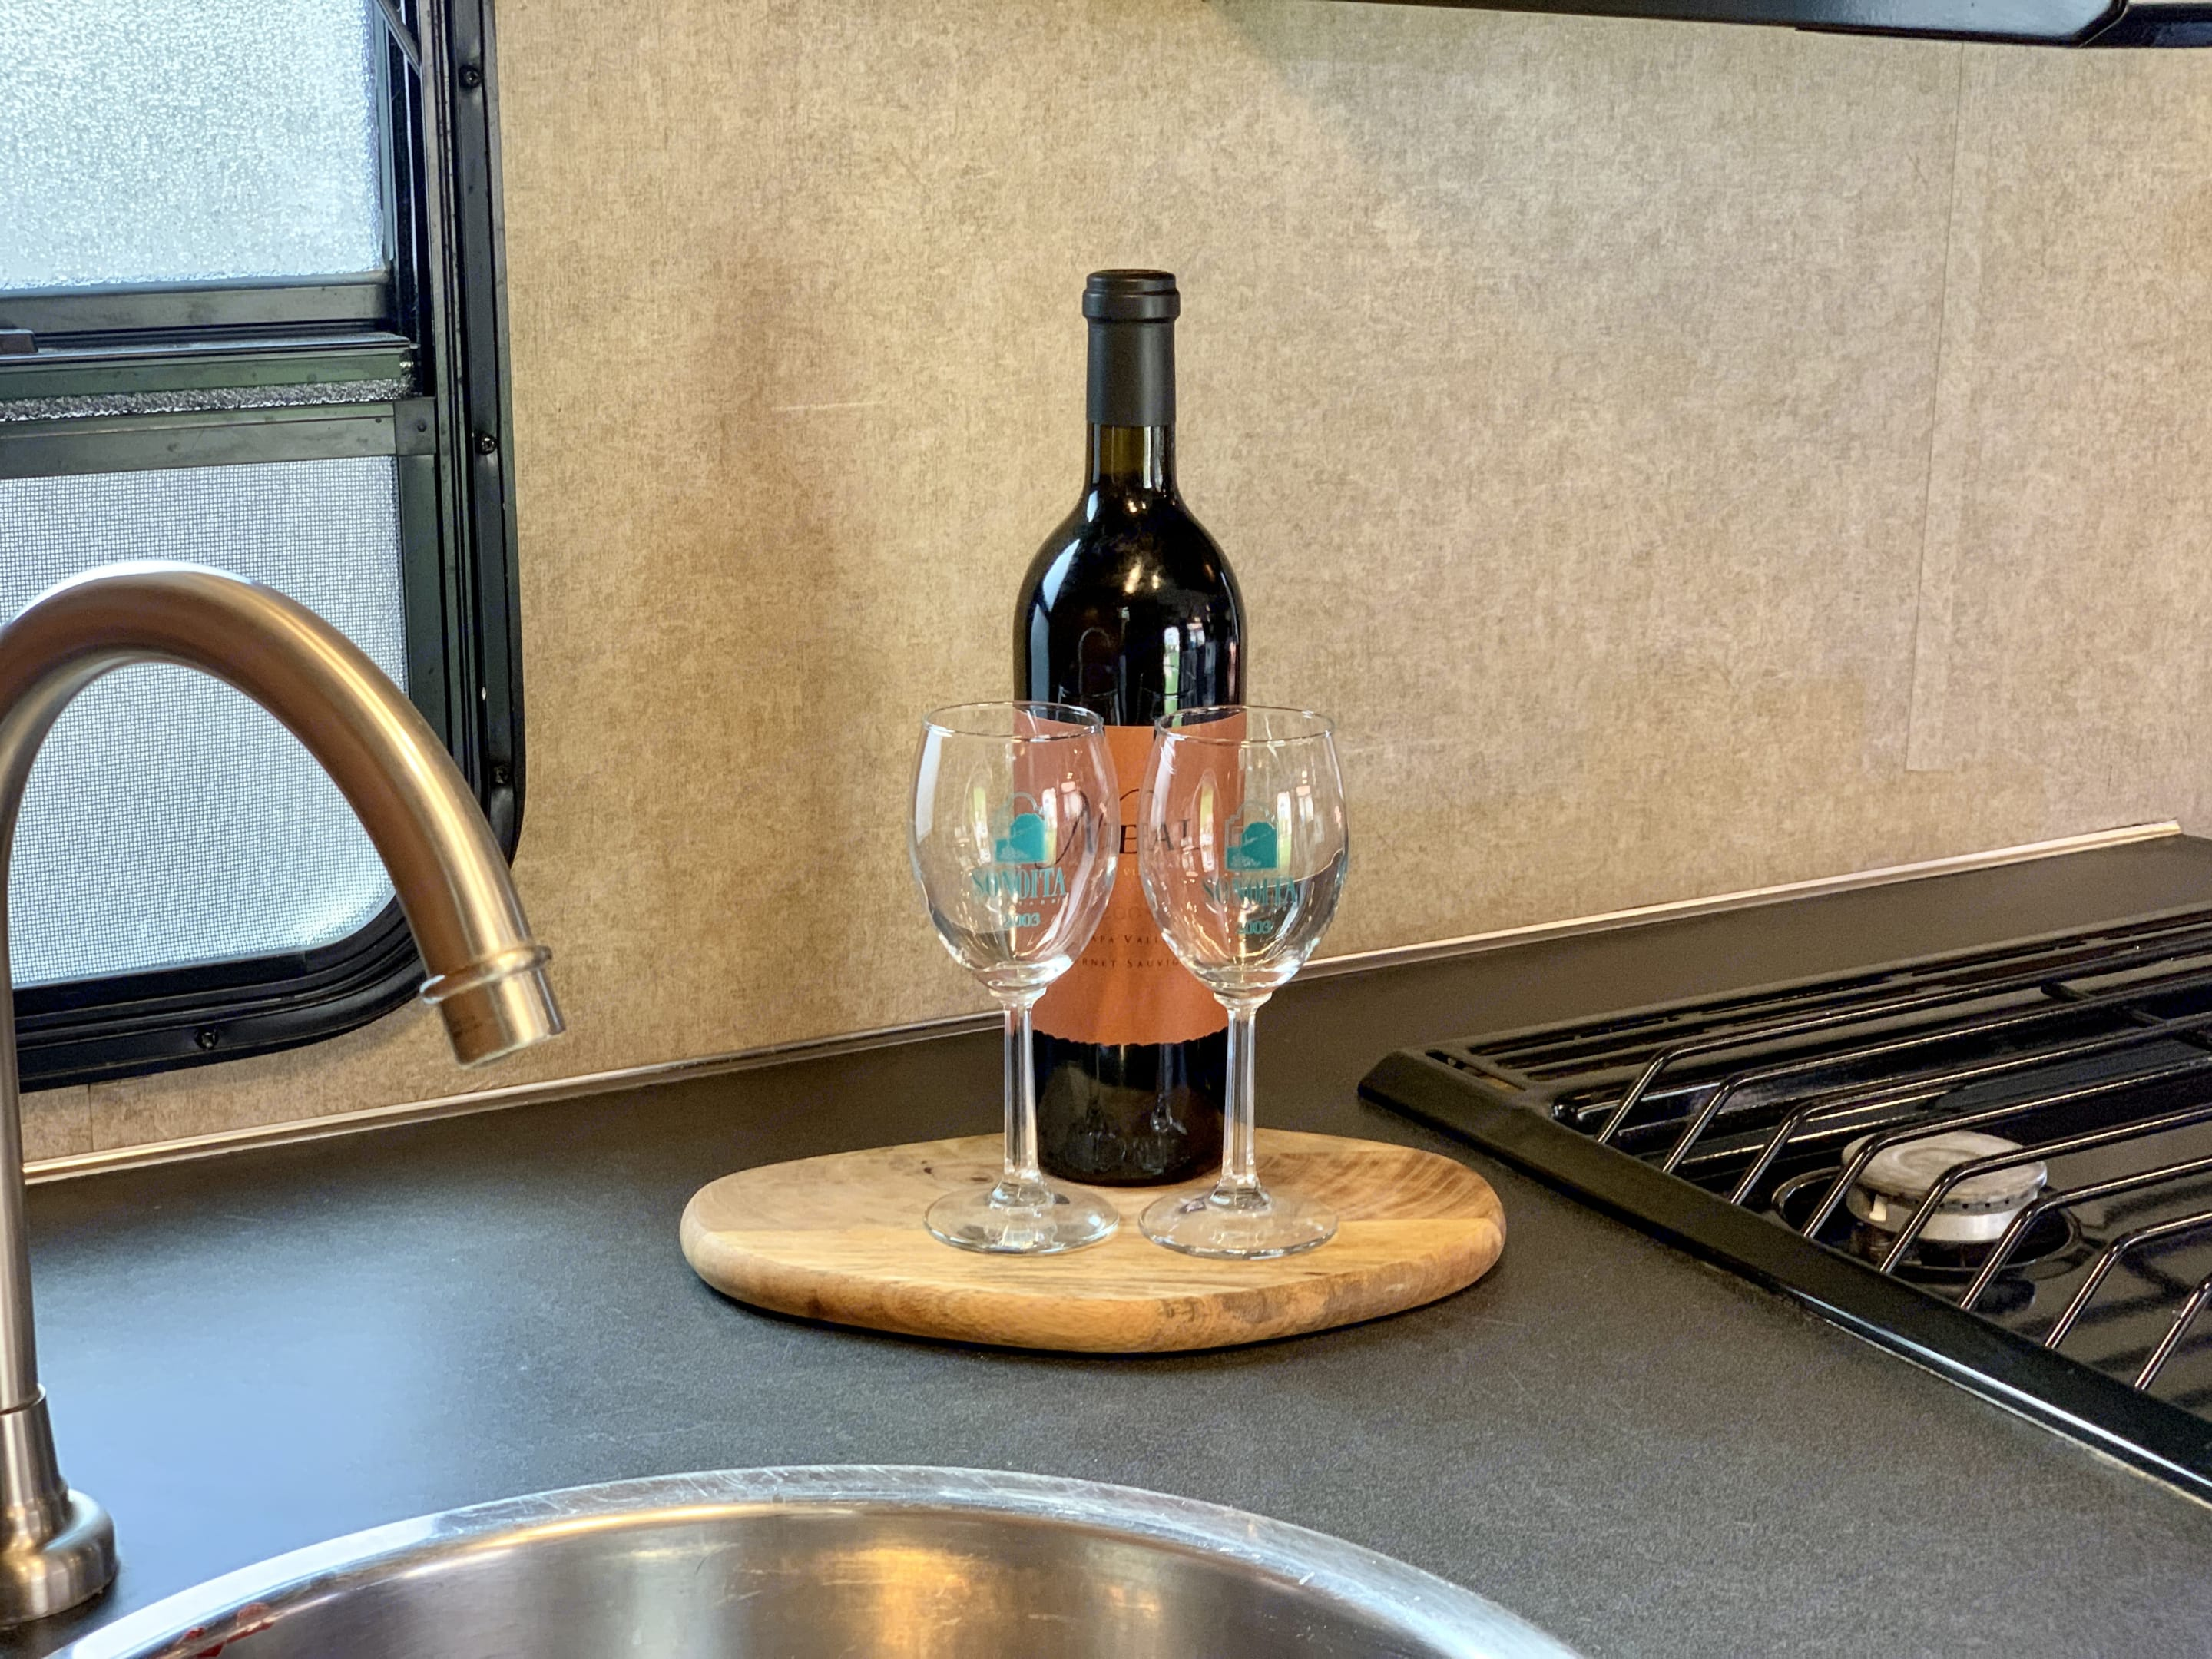 Take this rig wherever you want to go  - explore all that Arizona has to offer. Did we mention wine :). Thor Motor Coach Four Winds 2017